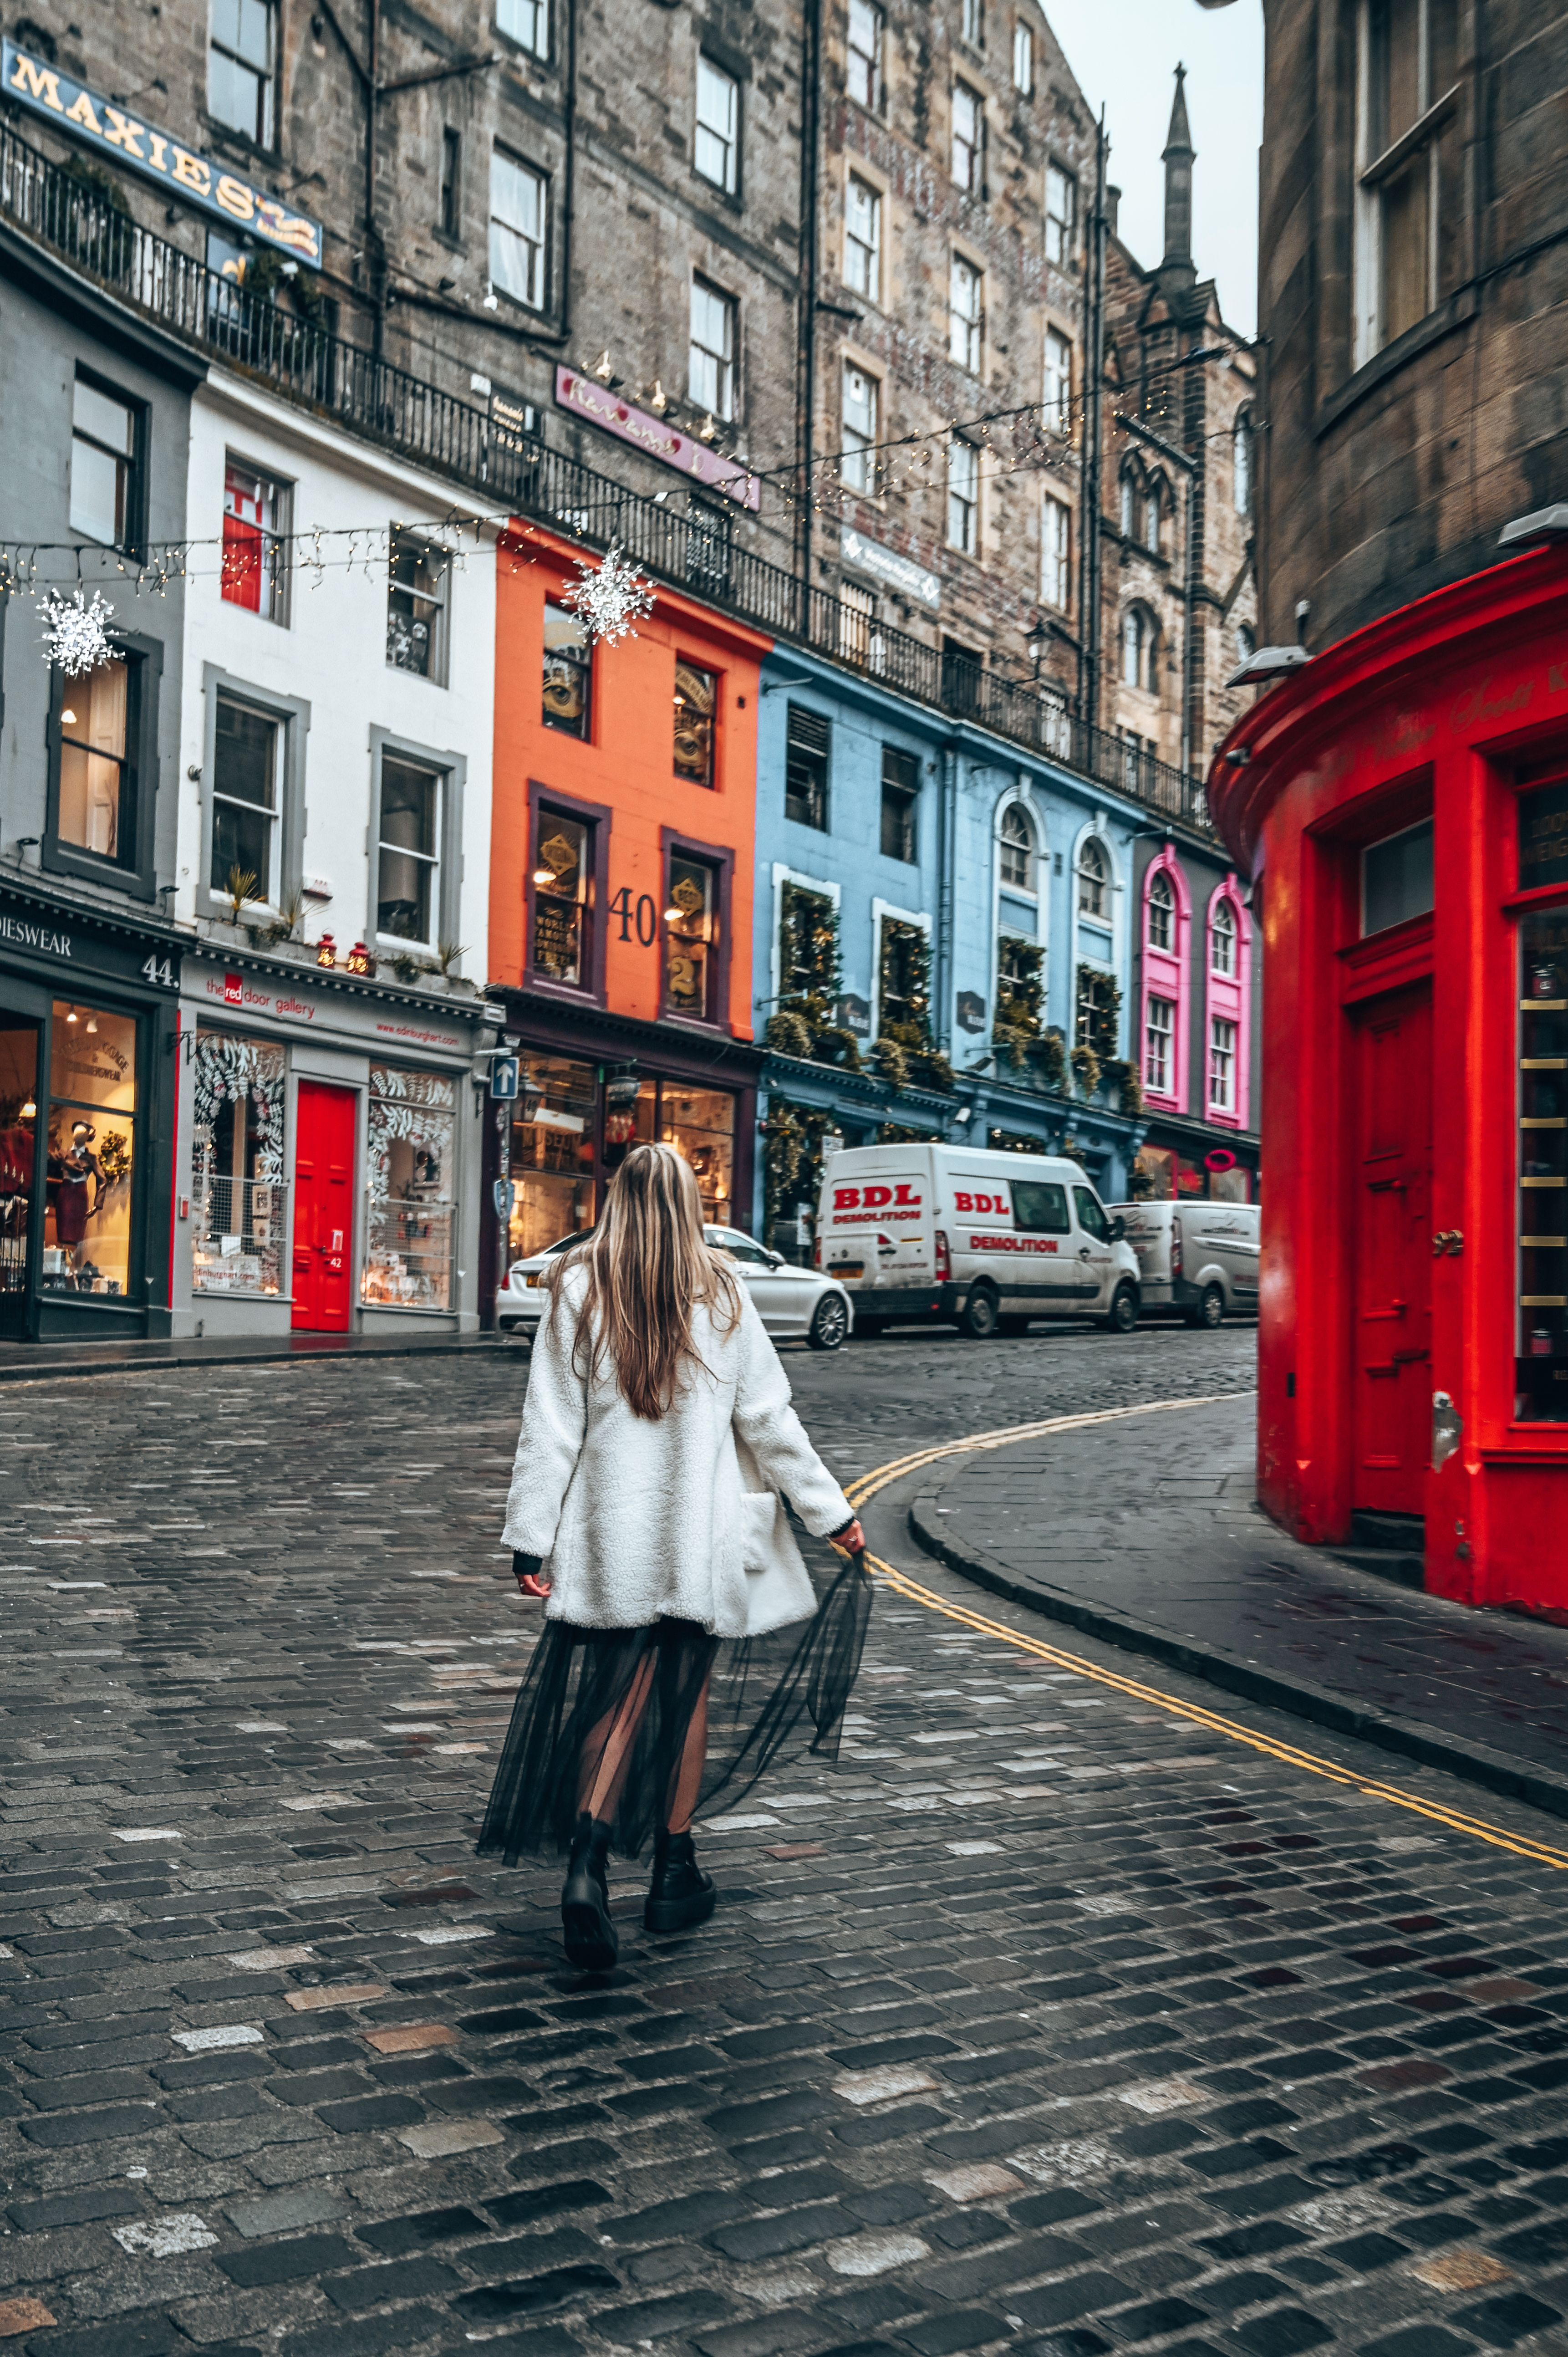 Check out the best day trips in Scotland from Glasgow including to the capital, Edinburgh.   #edinburghaesthetic #edinburghvictoriastreet #edinburghscotland #edinburgholdtown #edinburghscotlandtravel #victoriastreet